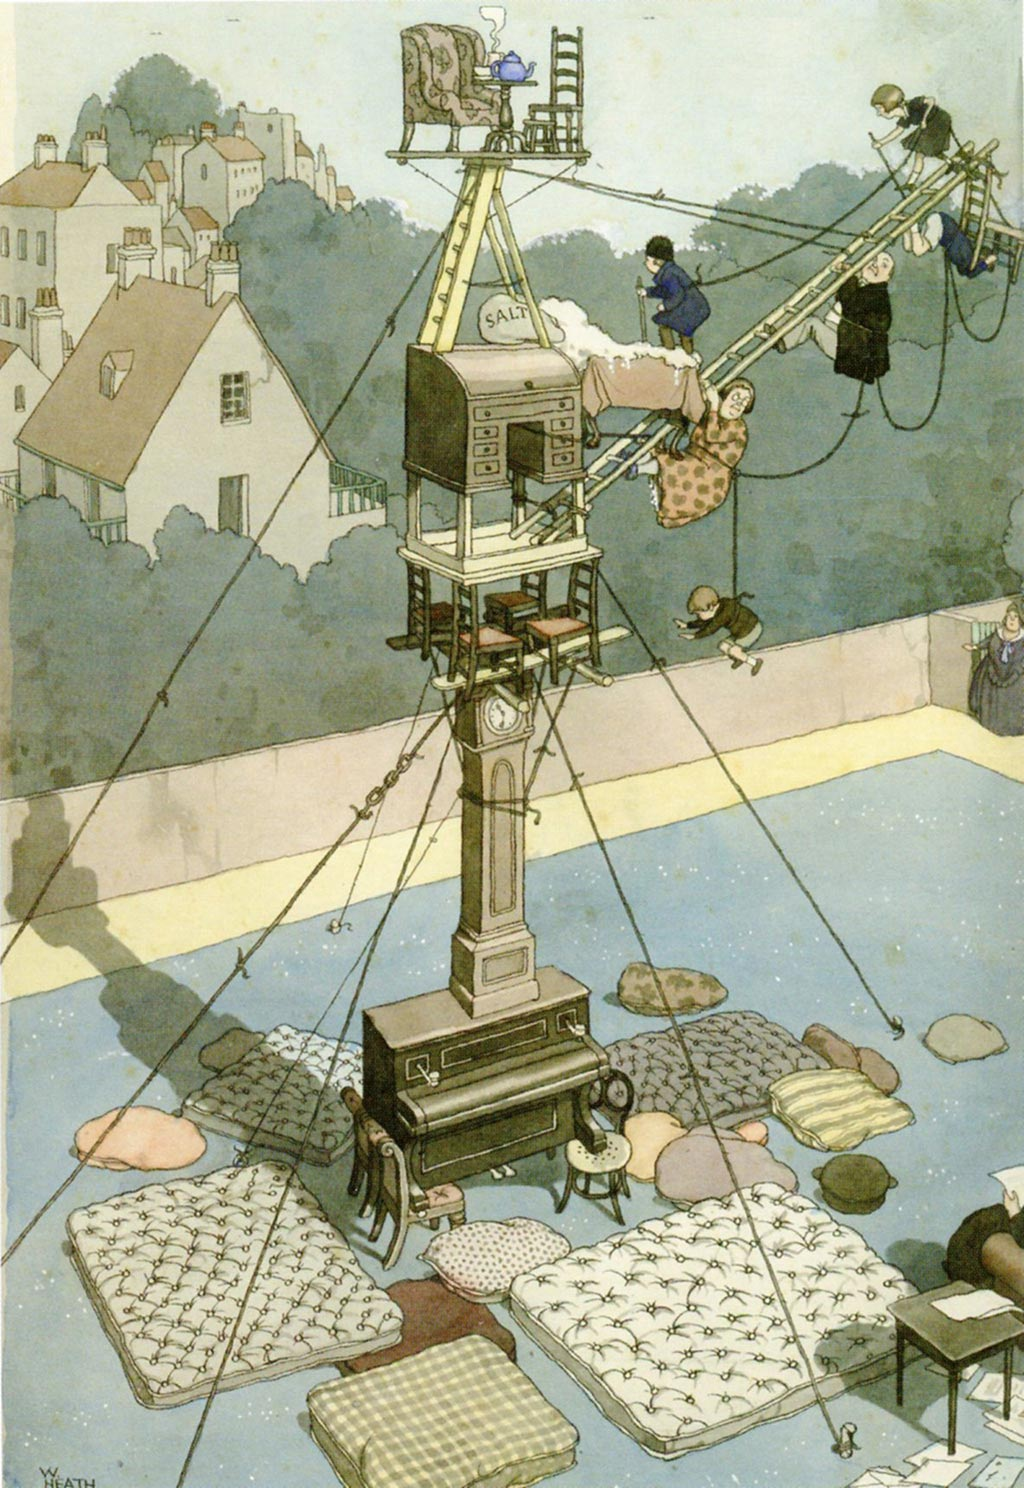 william_heath_robinson_inventions_carrying_out_the_correspondance_1928